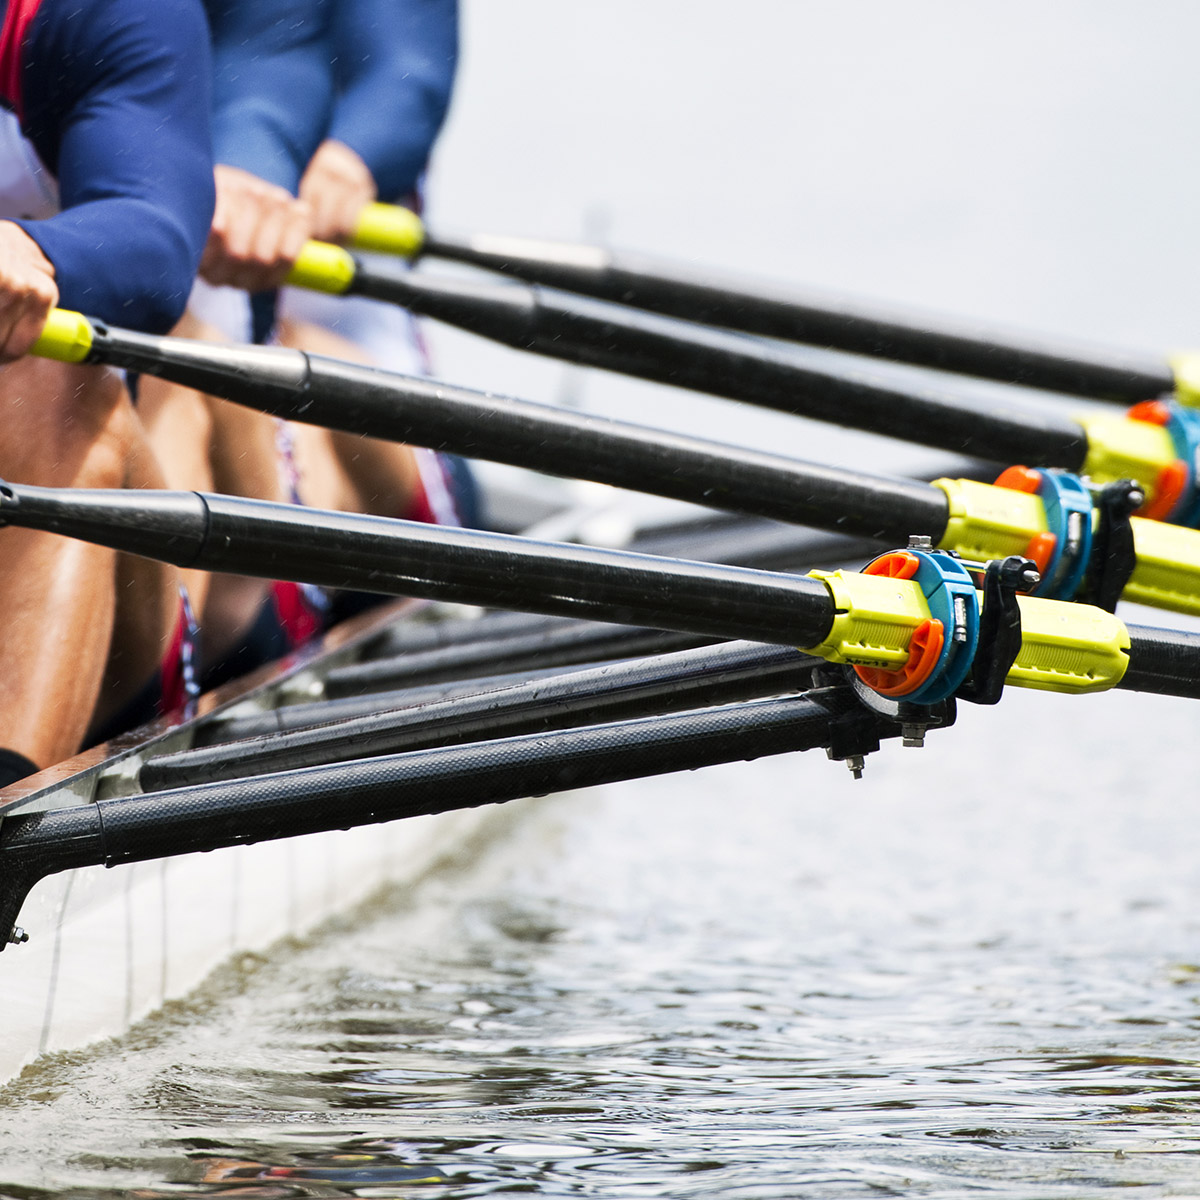 ROWING: Oxfordshire quartet set for title bid in Hamburg